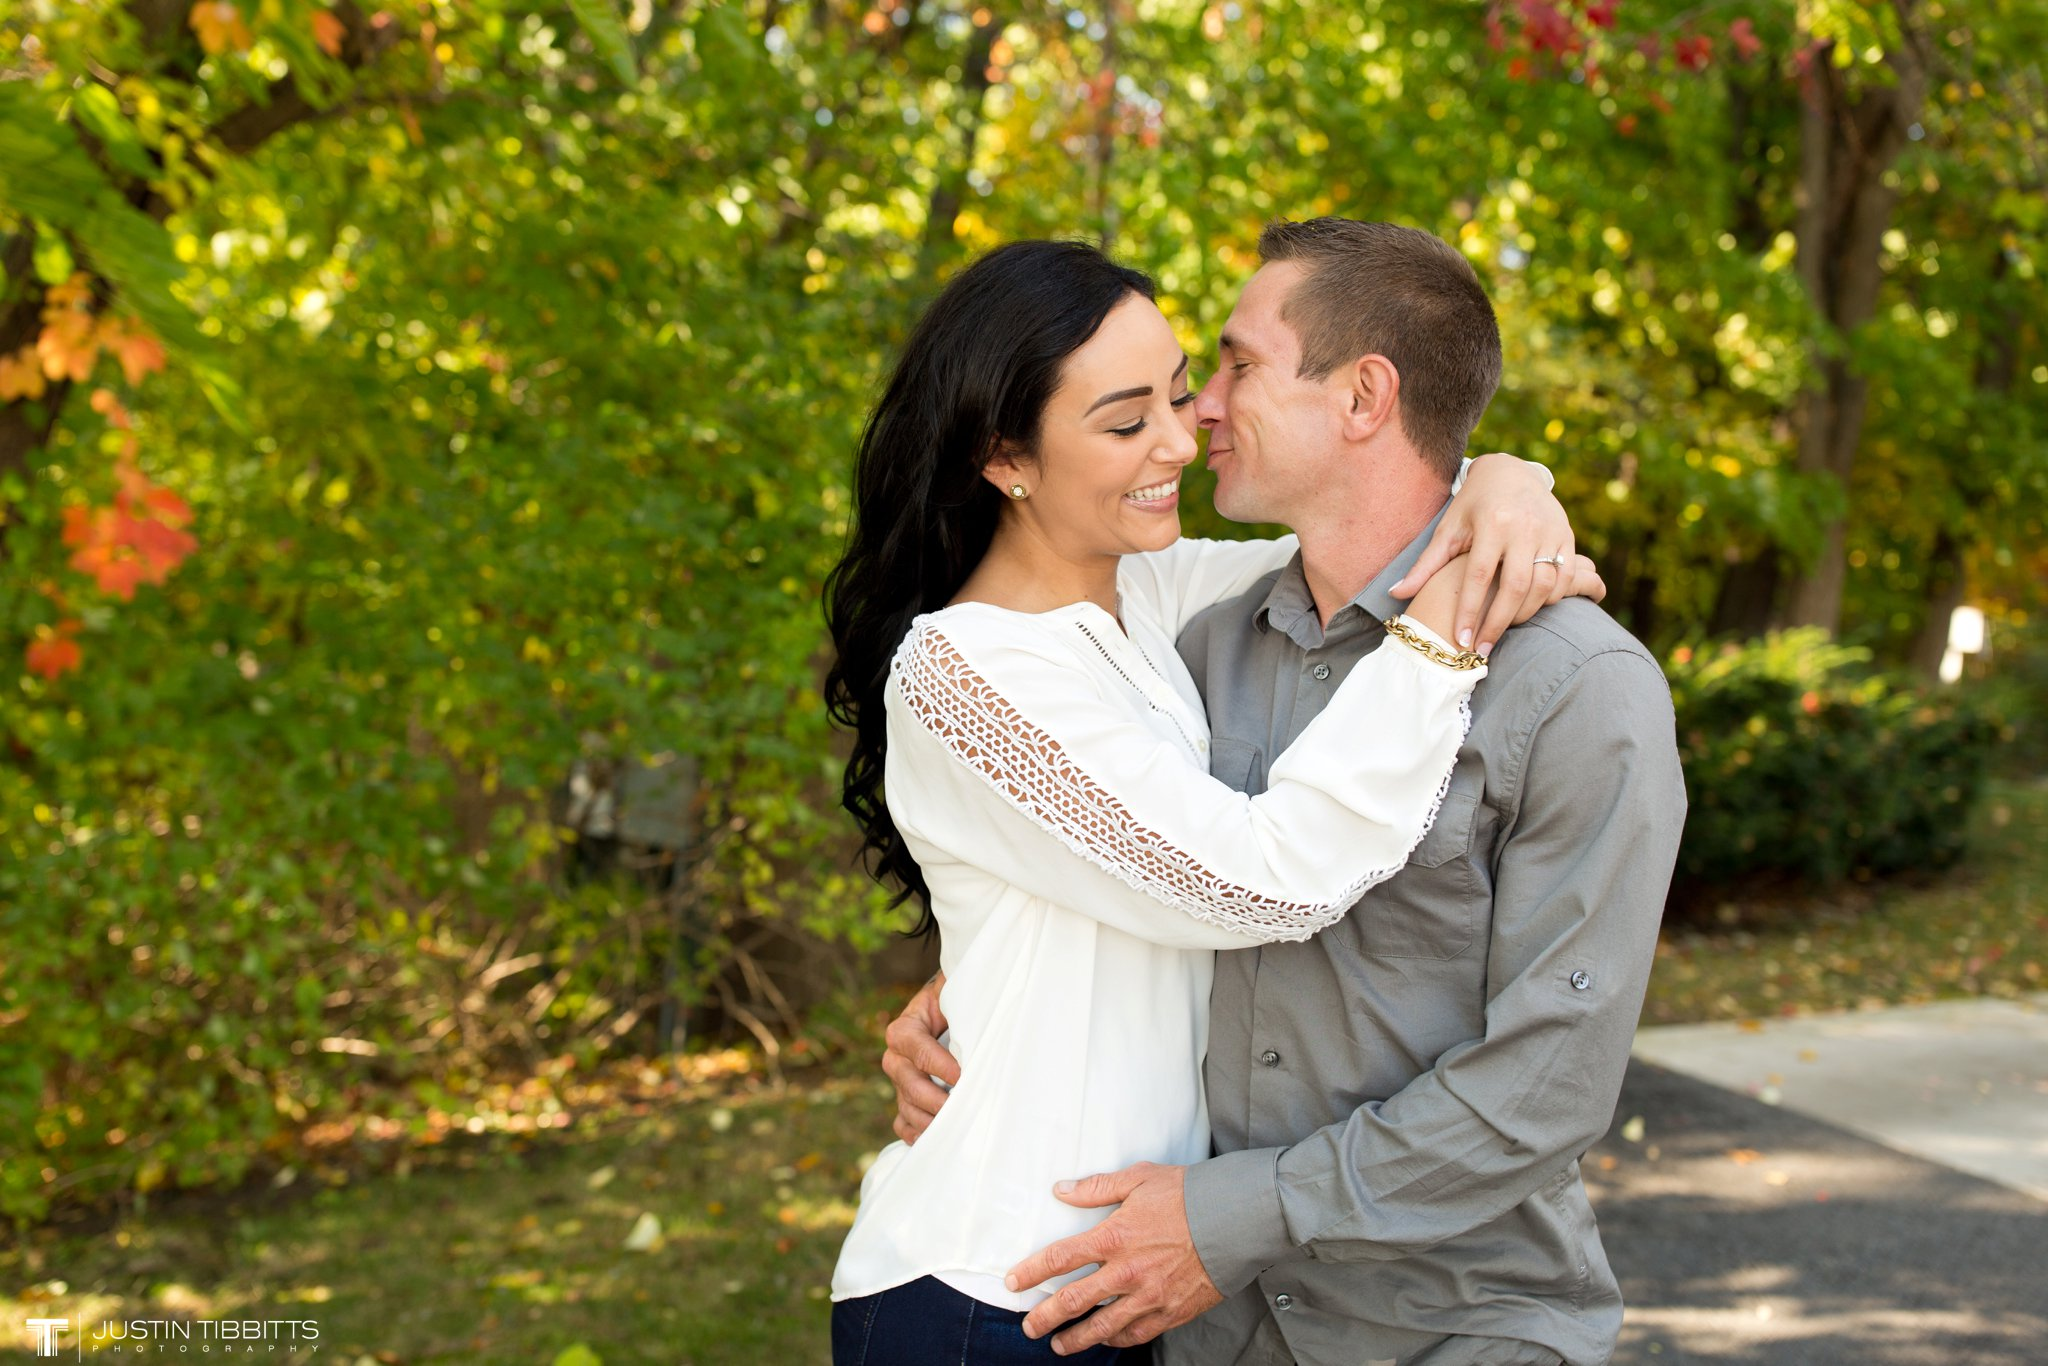 sagamore-engagement-photos-by-justin-tibbitts-photography-with-laina-and-mike_0003